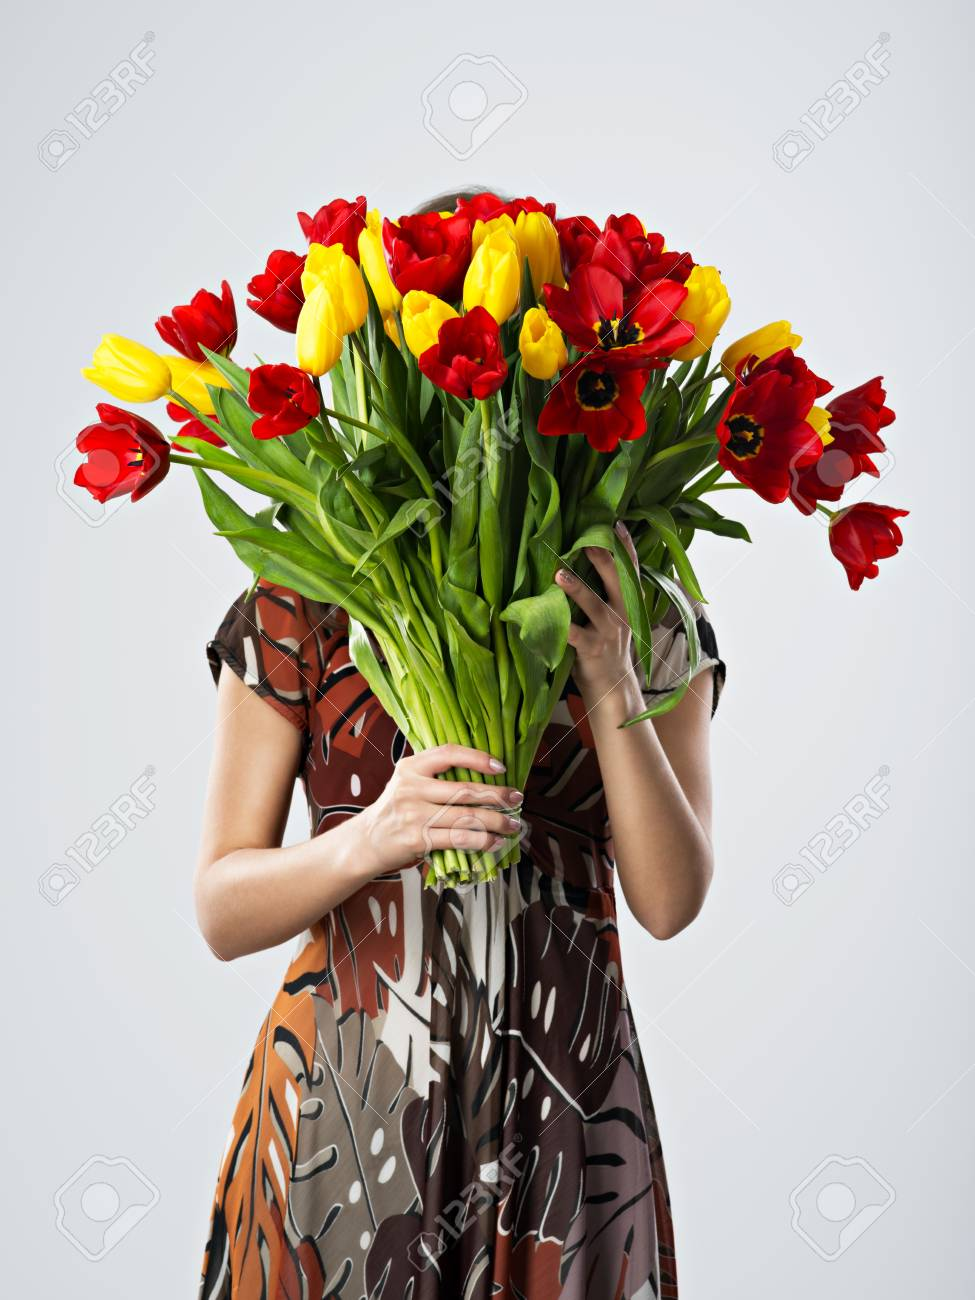 Girl Covering Her Face With Big Bouquets Of Flowers Stock Photo